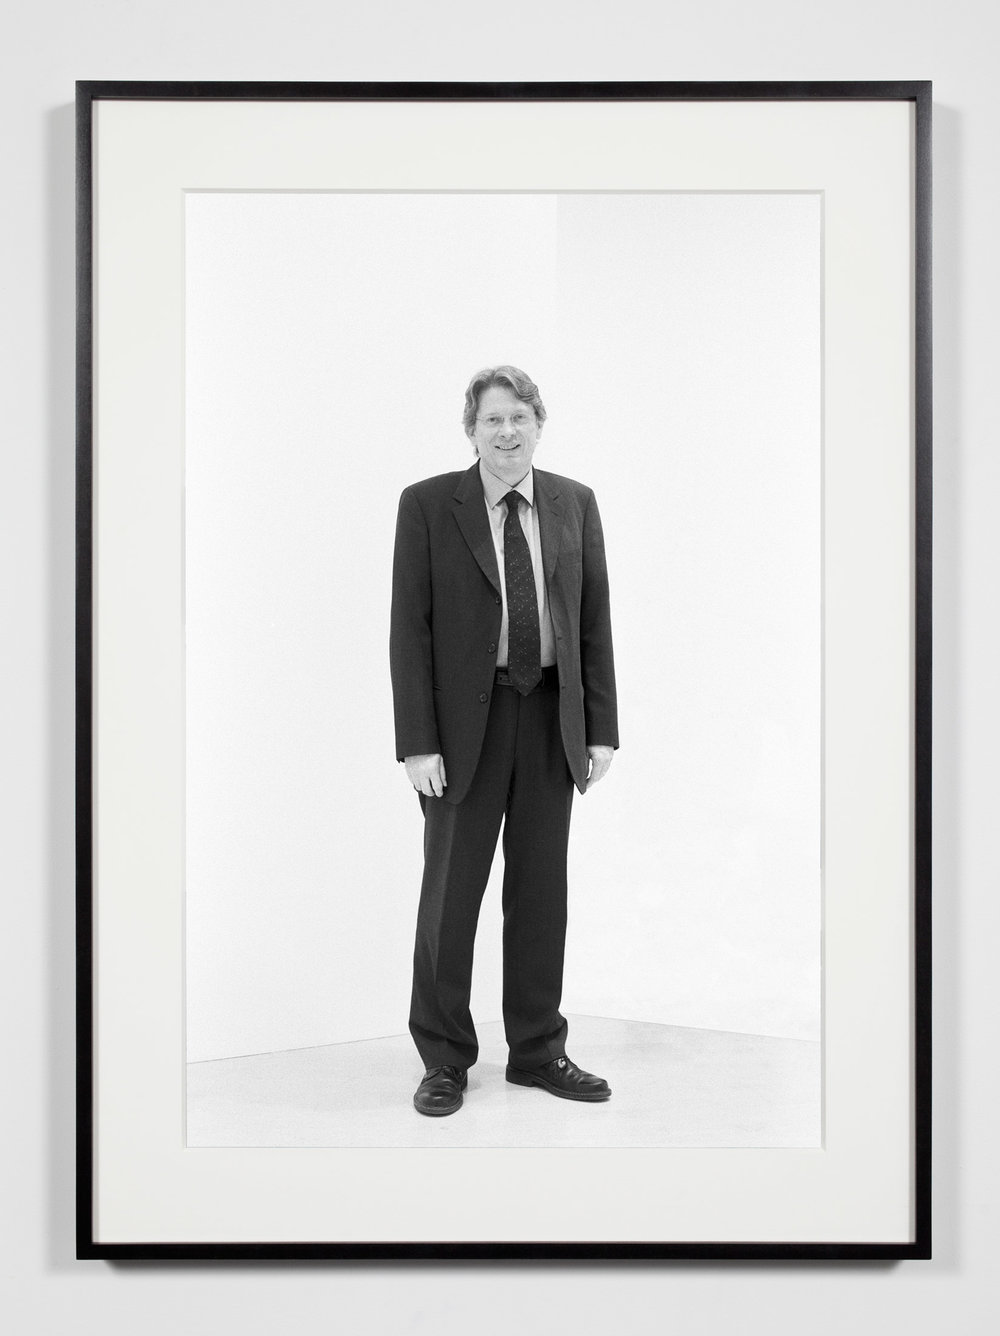 Museum Chief Curator, Washington, District of Columbia, April 29, 2009   2011  Epson Ultrachrome K3 archival ink jet print on Hahnemühle Photo Rag paper  36 3/8 x 26 3/8 inches   Industrial Portraits, 2008–    A Diagram of Forces, 2011